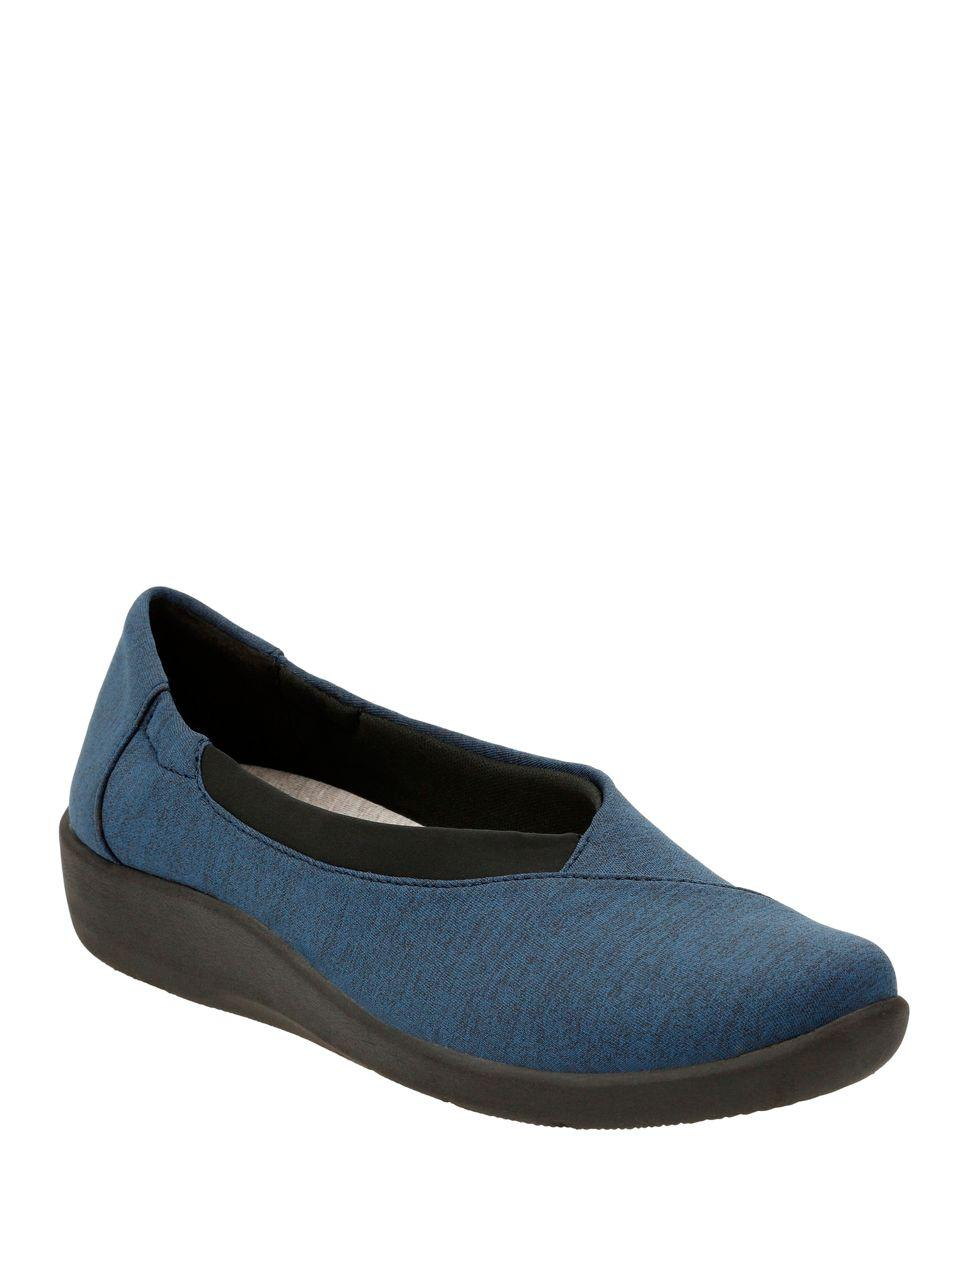 Finn Comfort Flat Shoes